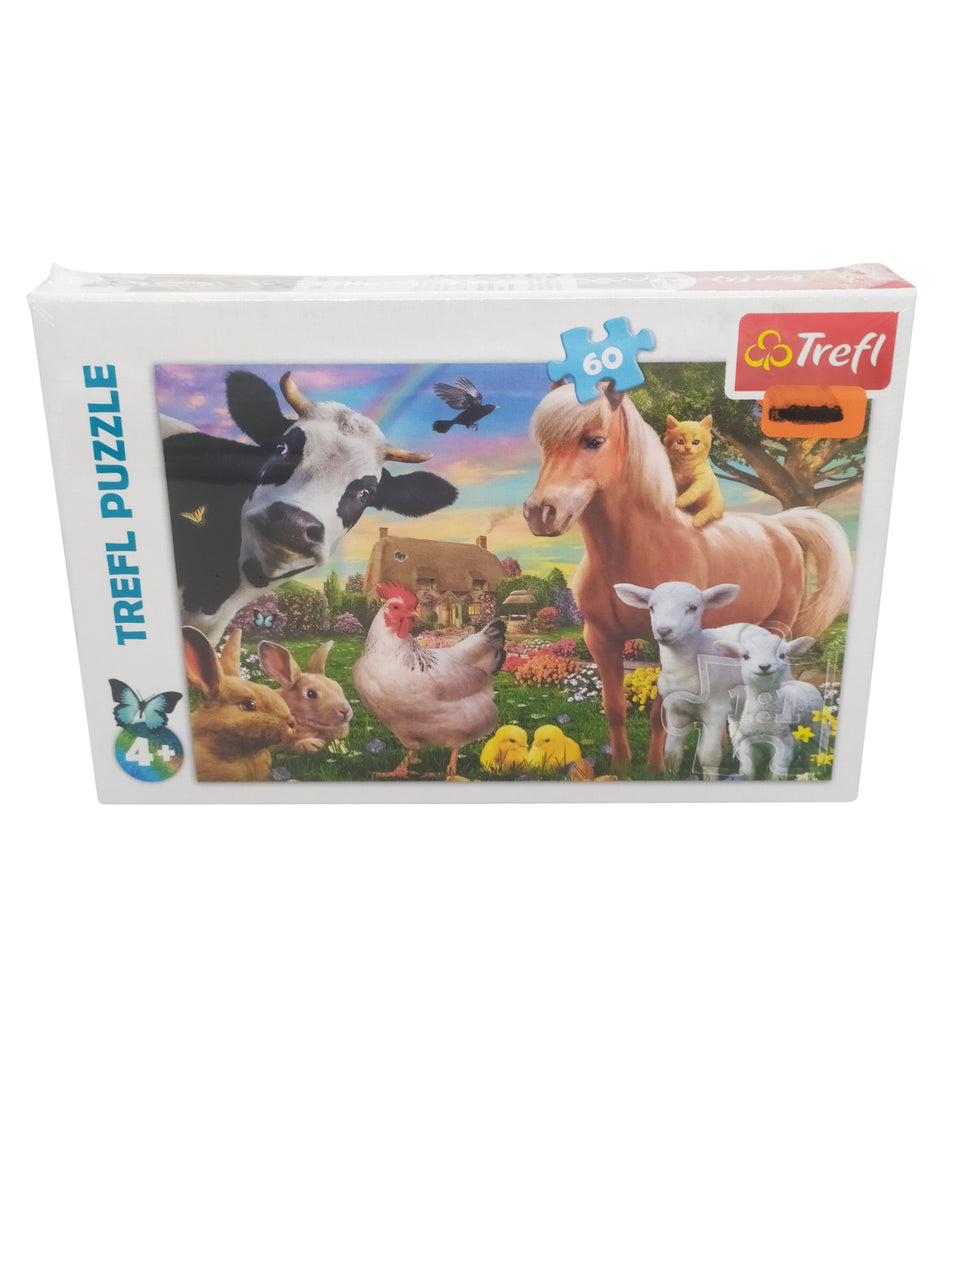 Trefl puzzle 60 piece - Farm animals